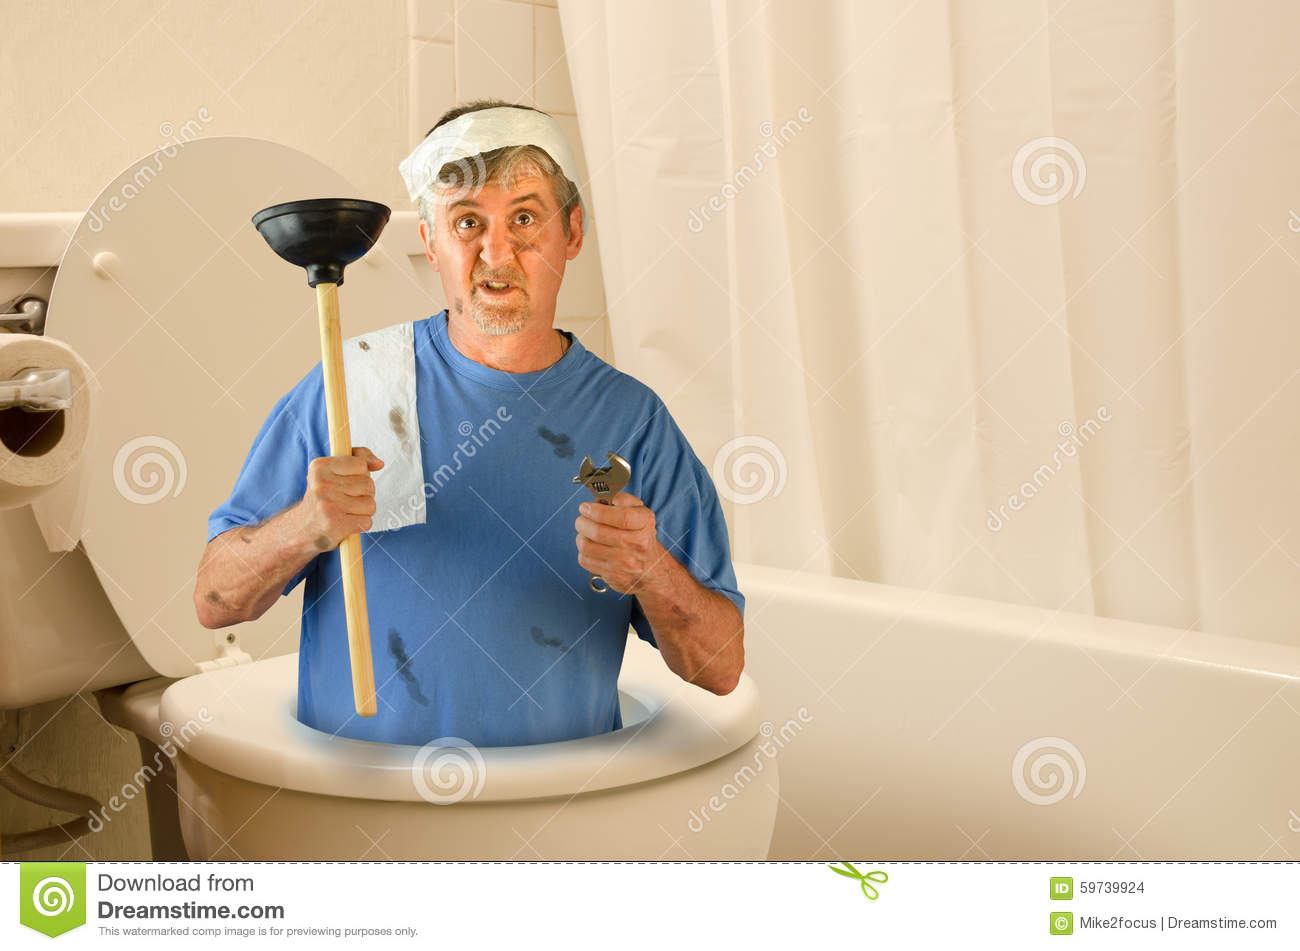 humorous-plumber-inside-toilet-tools-toilet-paper-do-yourself-funny-confused-look-his-face-his-draped-59739924.jpg